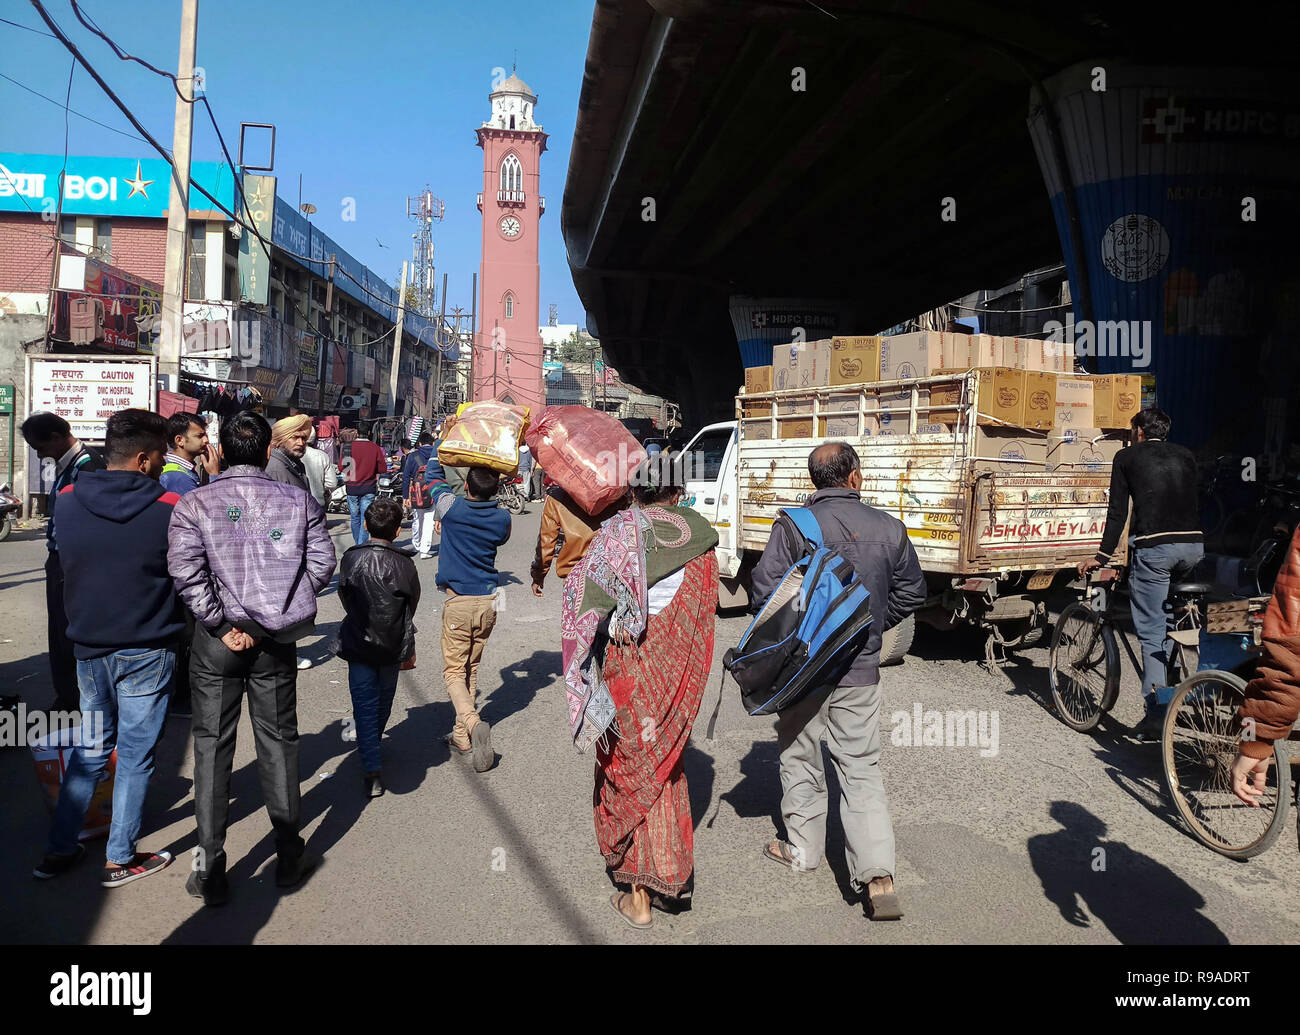 Ludhiana, Punjab, India. 21st Dec, 2018. Indian residents seen walking next to the city clock tower in Ludhiana city of Punjab, India. Punjab, a state bordering Pakistan, is the heart of India's Sikh community. The state is bordered by the Indian states of Jammu and Kashmir to the north, Himachal Pradesh to the east, Haryana to the south and southeast, Rajasthan to the southwest, and the Pakistani province of Punjab to the west. Punjab is primarily agriculture-based due to the presence of abundant water sources and fertile soils. The population of Punjab is estimated to be 30,452,879 - Stock Image